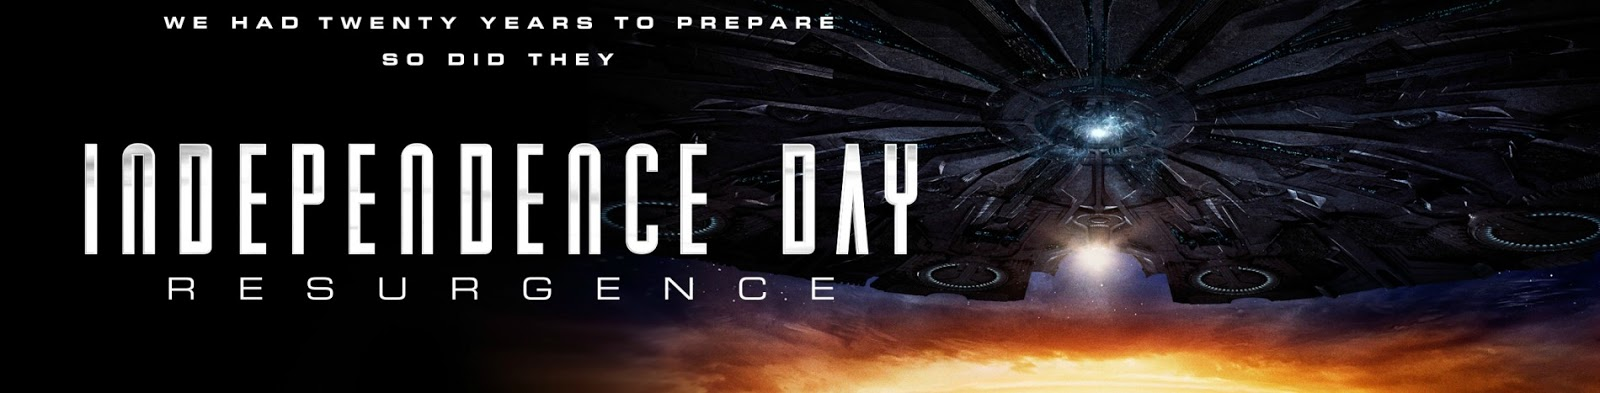 Independence Day: Resurgence (2016) Banner